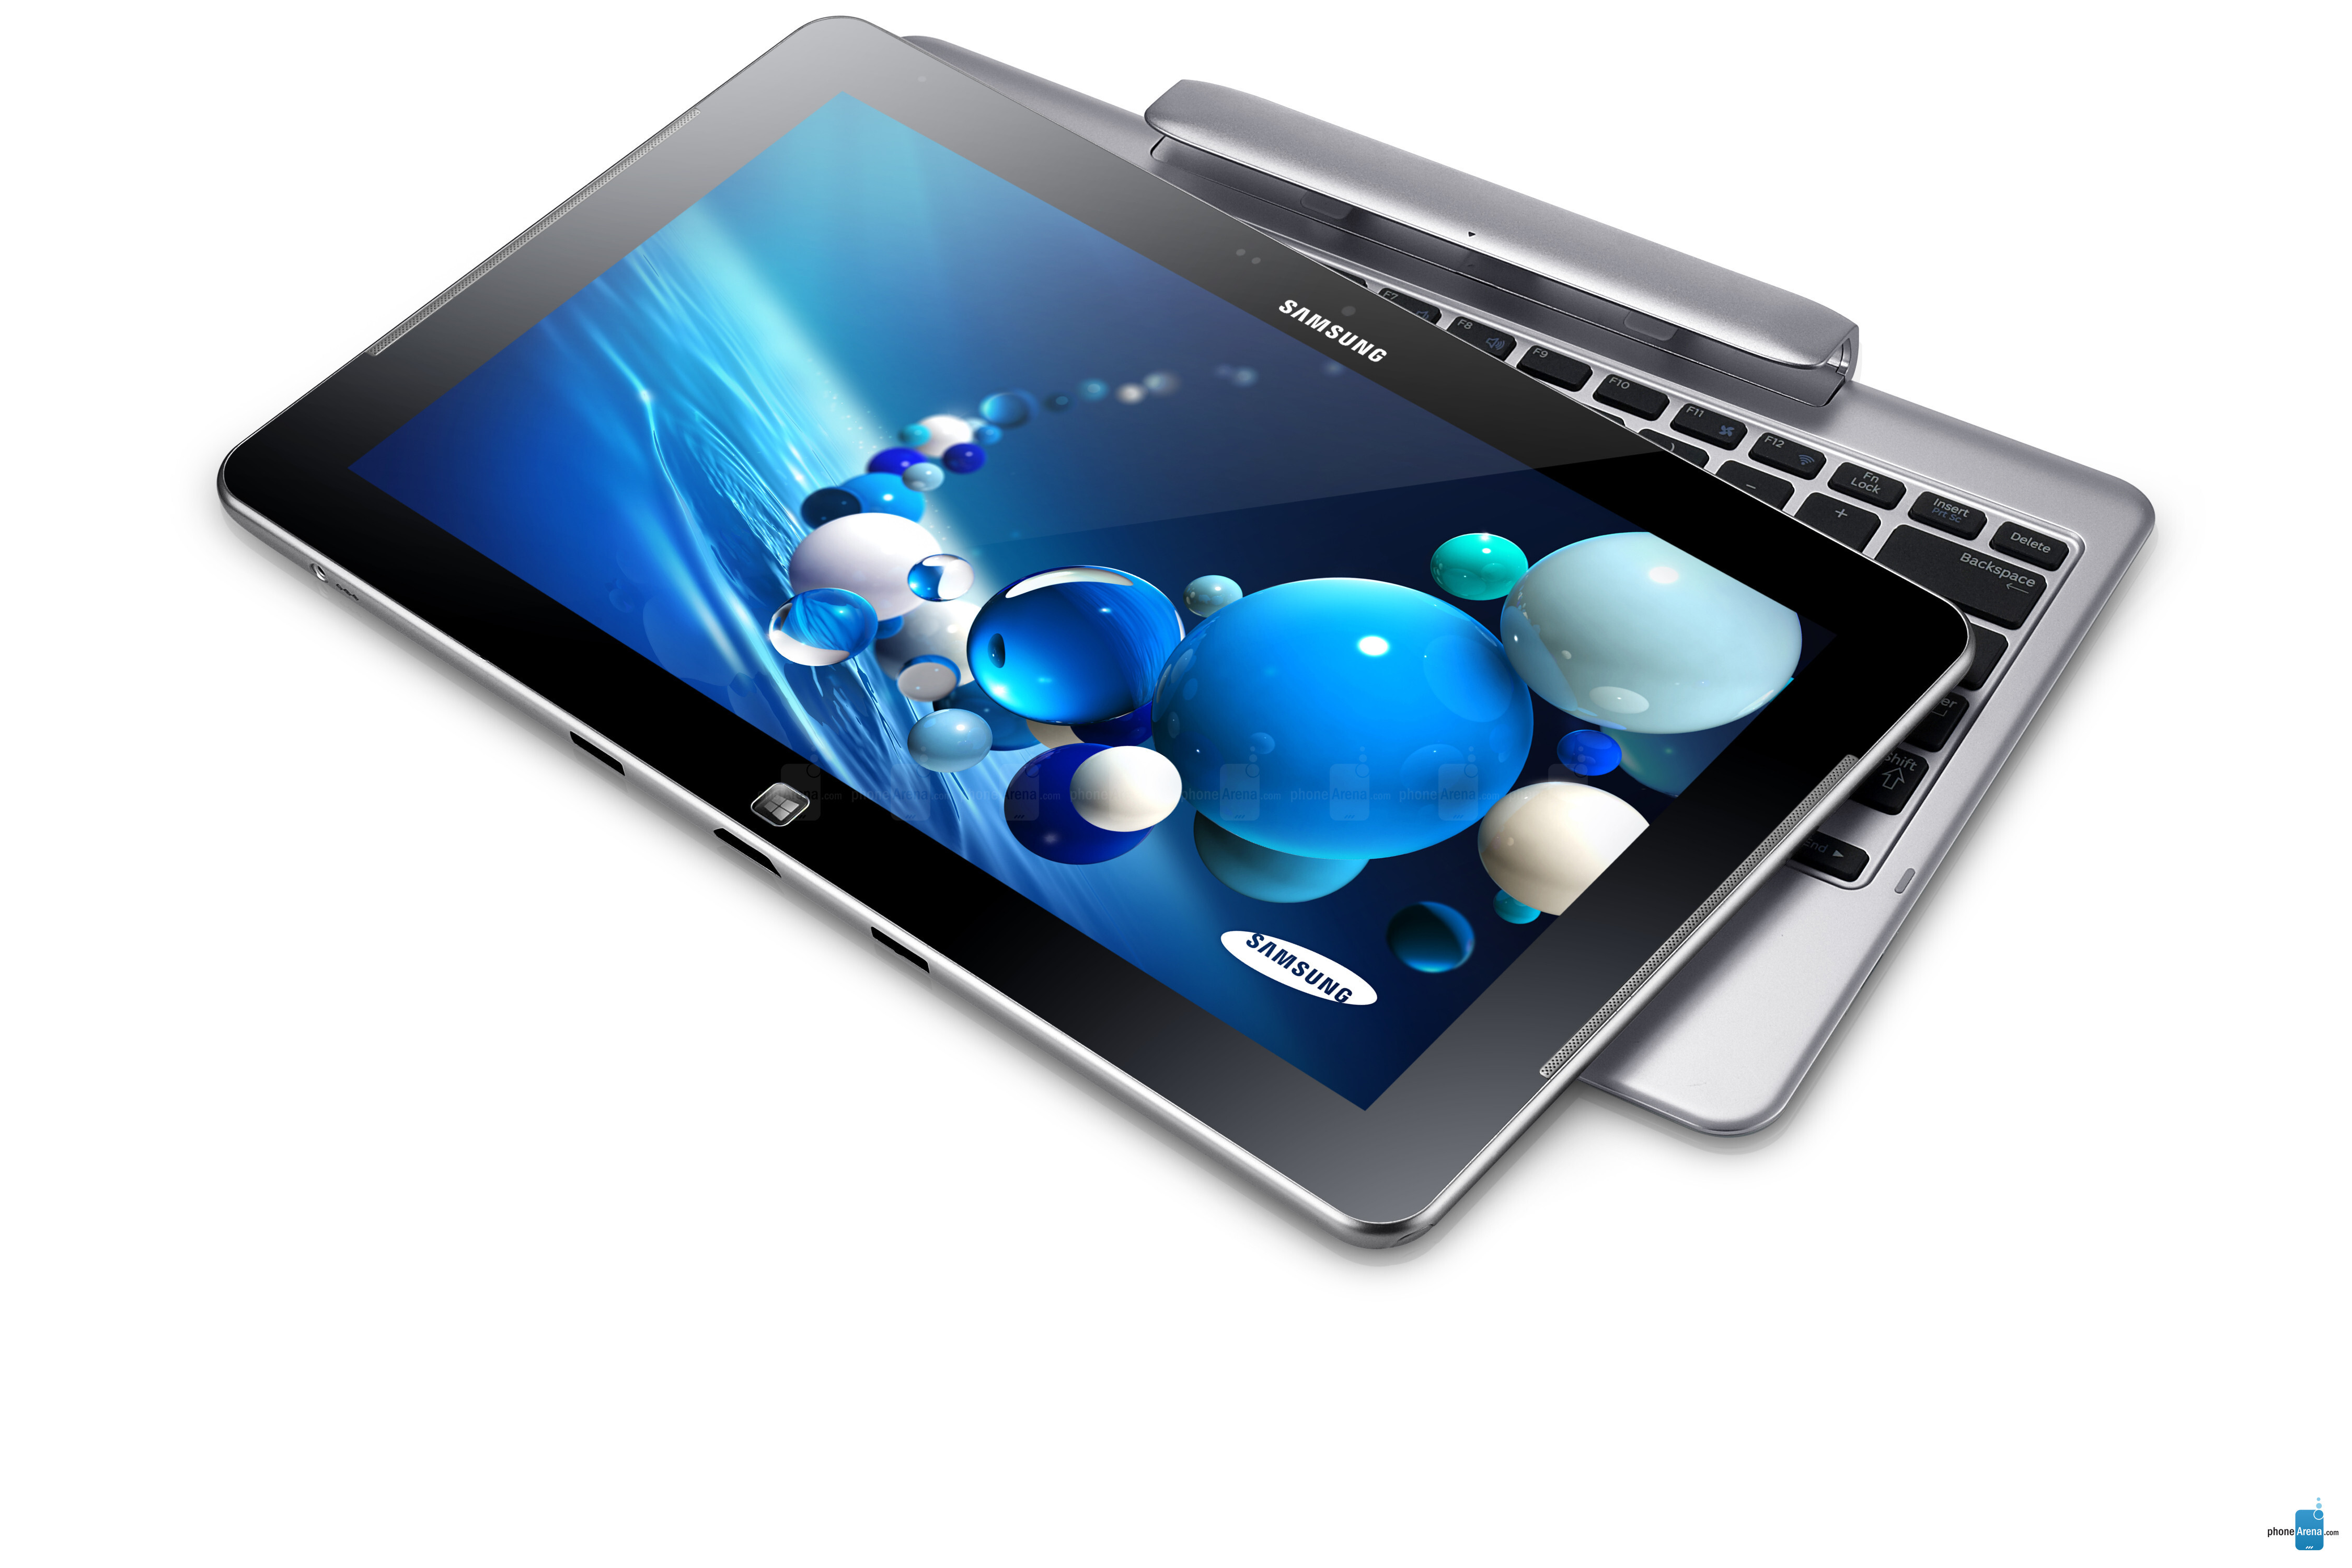 samsung ativ tab 7 specs. Black Bedroom Furniture Sets. Home Design Ideas